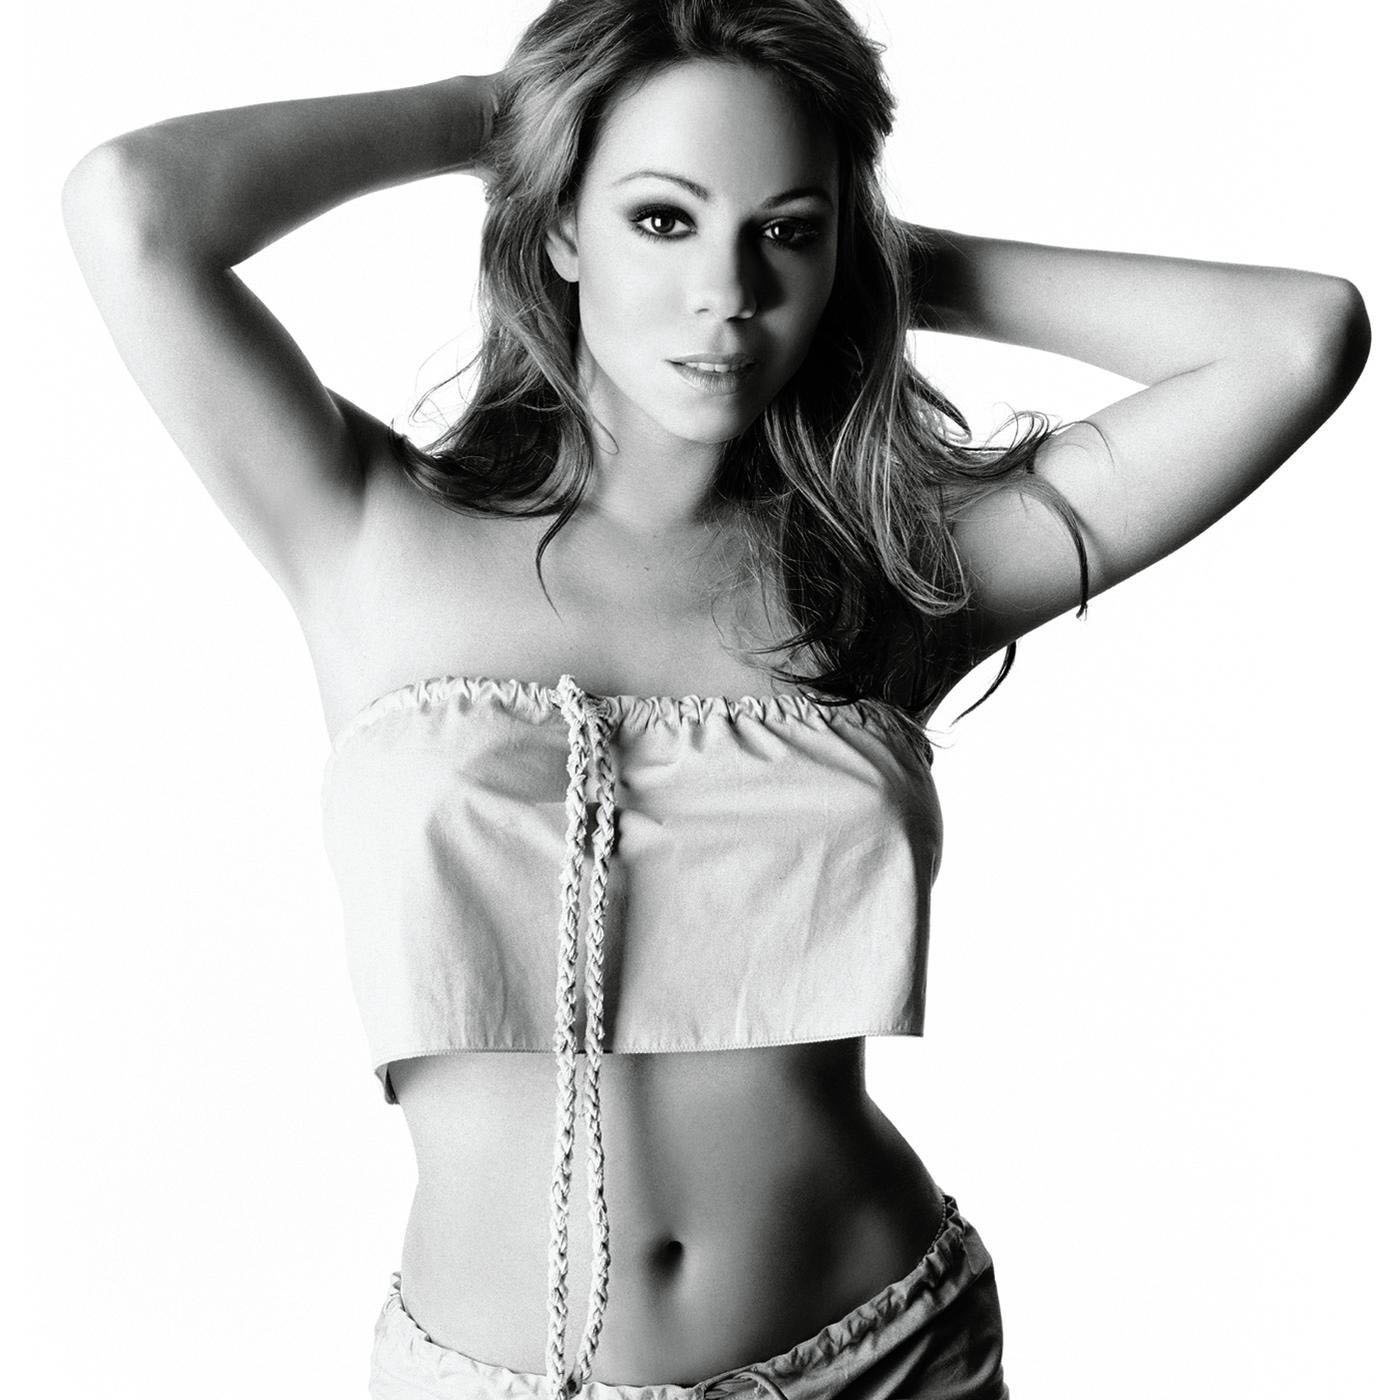 This is the first song that I sang as a professional singer - Mariah Carey